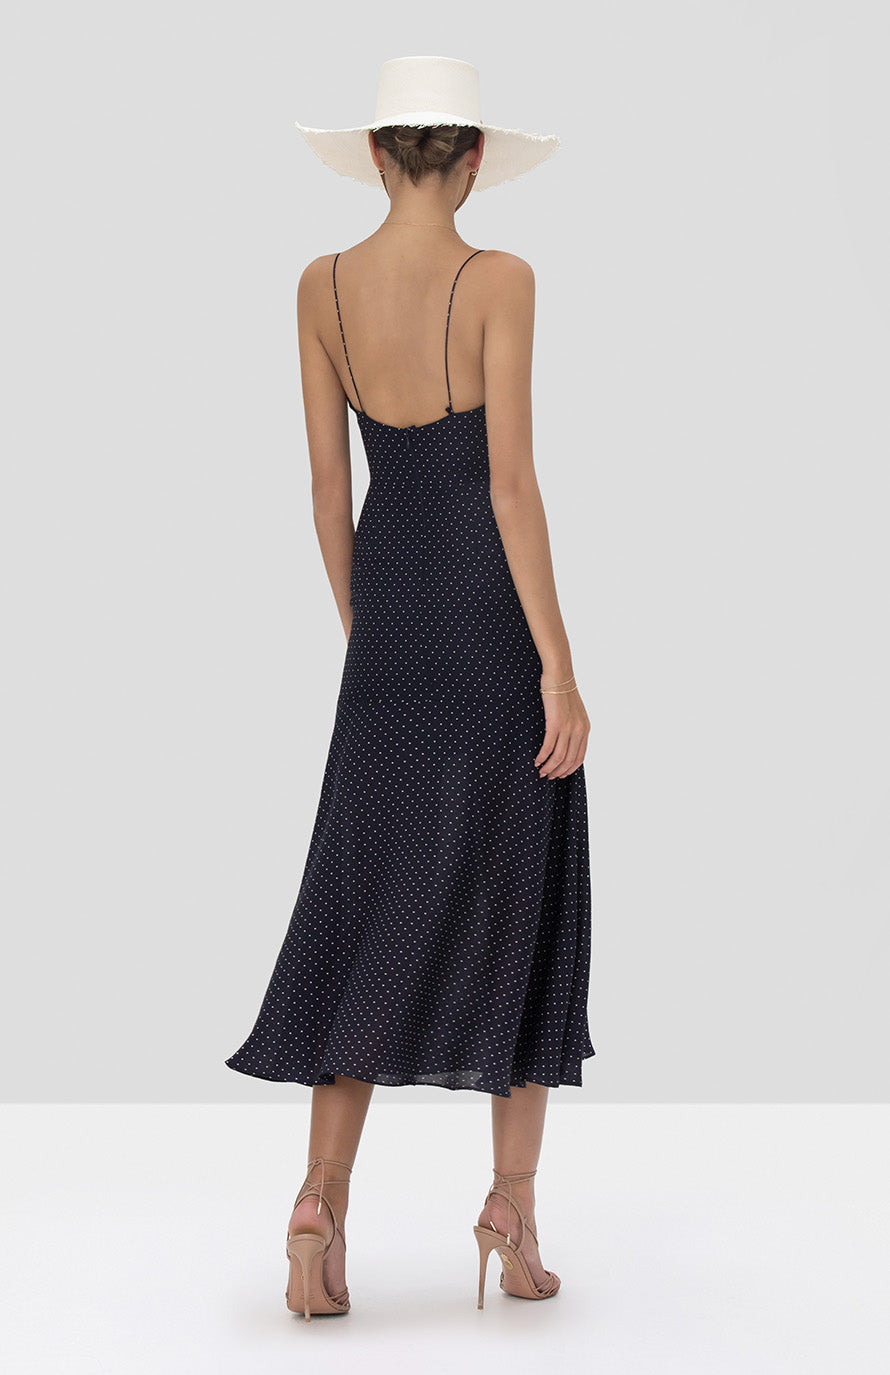 Alexis Nizarra Dress in Navy Dot Linen from the Spring Summer 2020 Collection  - Rear View